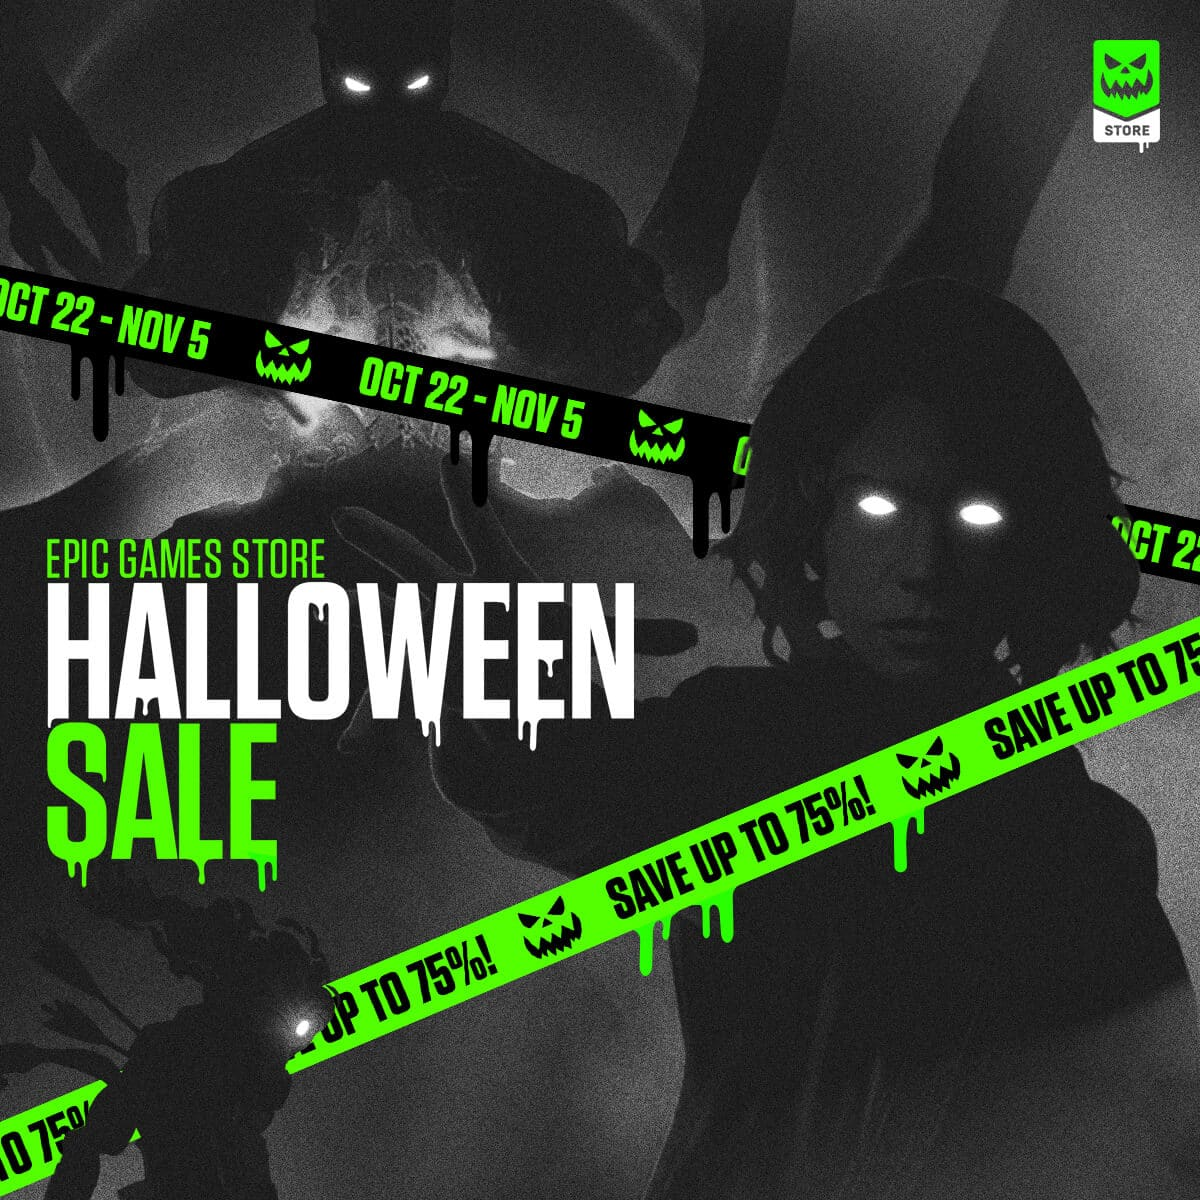 Epic Games Halloween Sale: Shenmue III $6.99, Journey to the Savage Planet $7.99, Metro Exodus $5.99 & More (prices after coupon). $10 off coupons expire 11/1